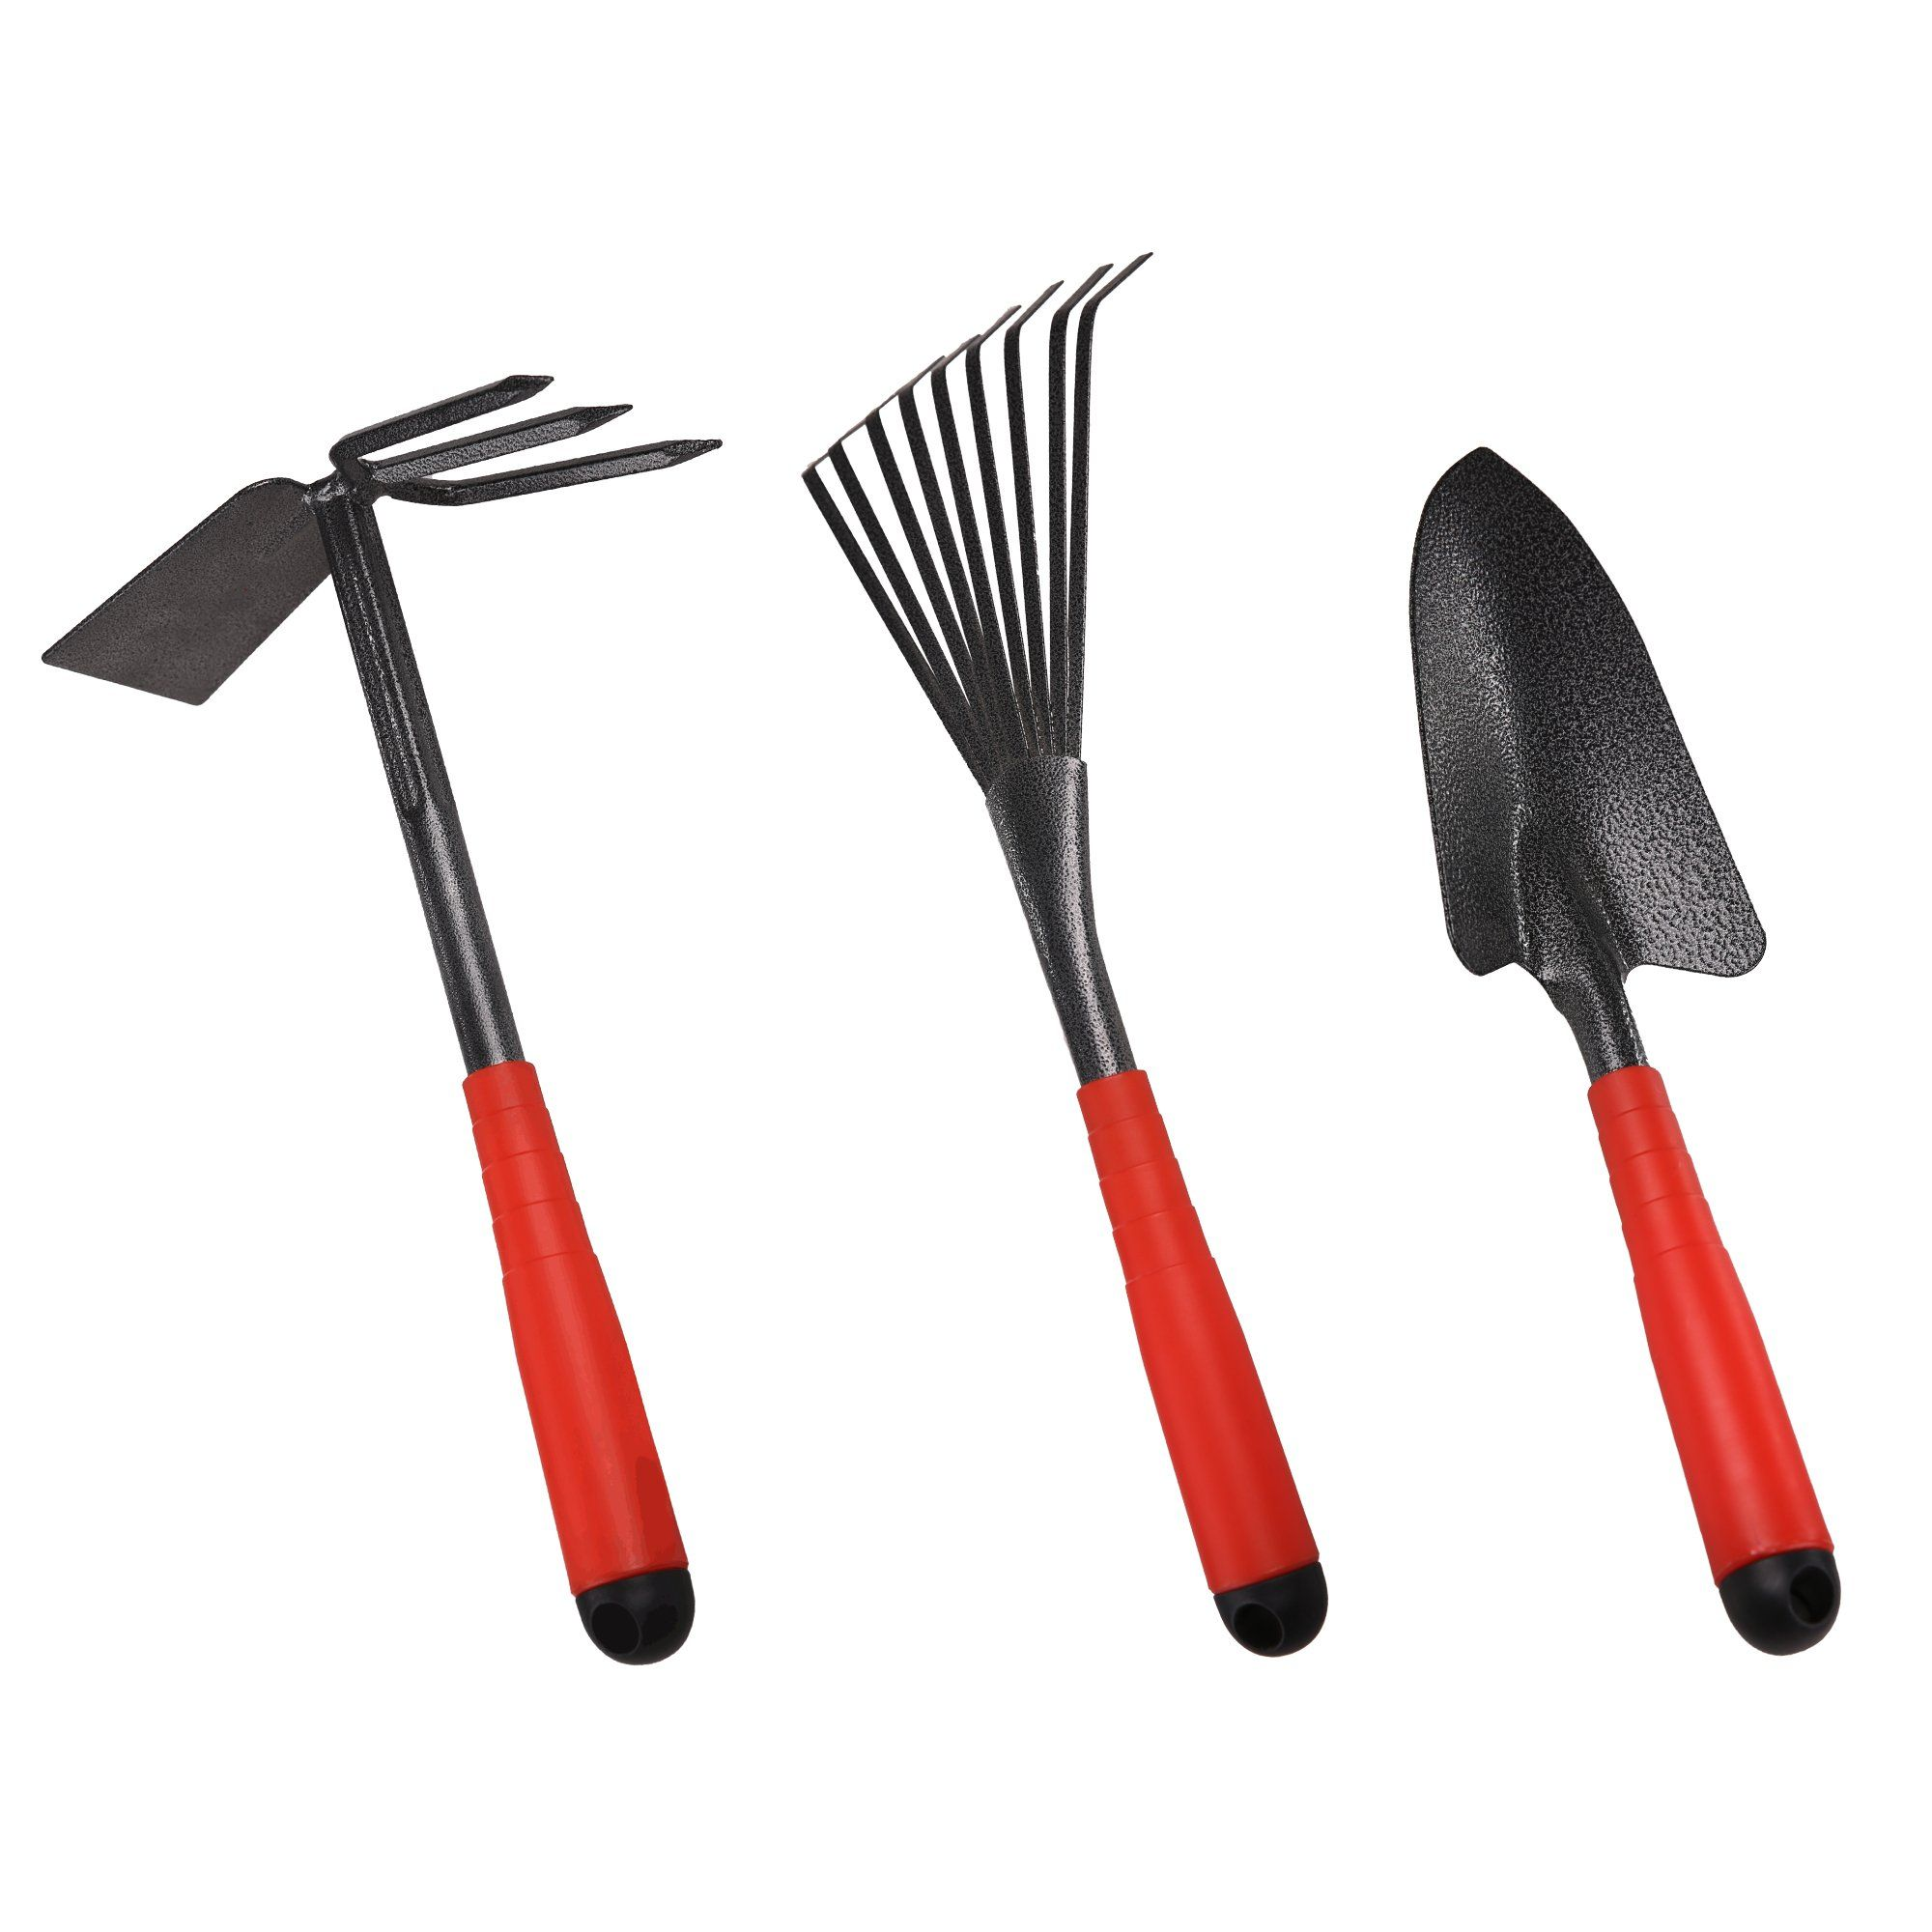 fe166a564802244cd4c4440bfe6d51bd - Bloom 4 Piece Gardening Tool Set